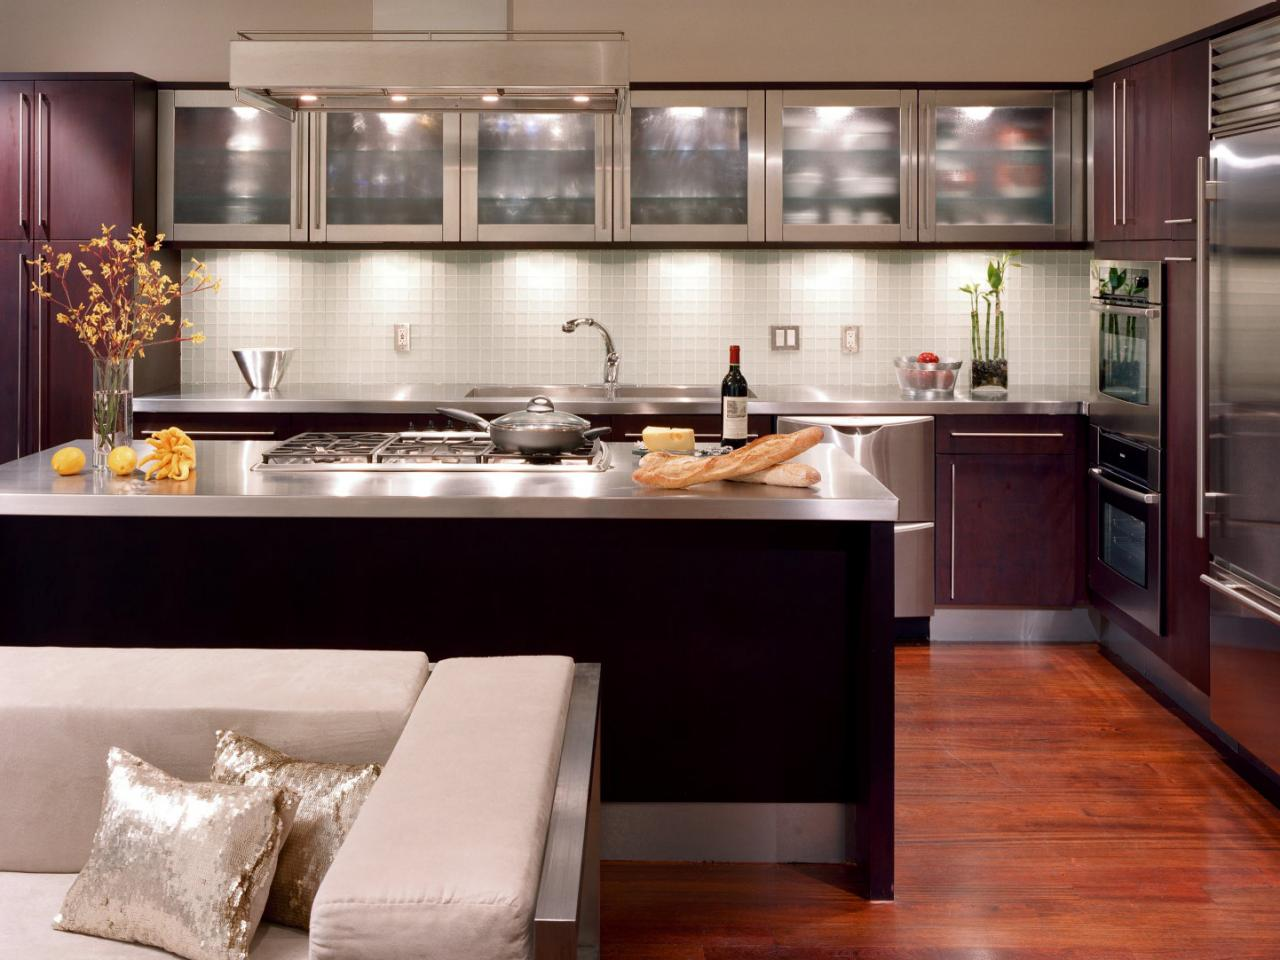 Tags: kitchens  metallic photos  modern style ...